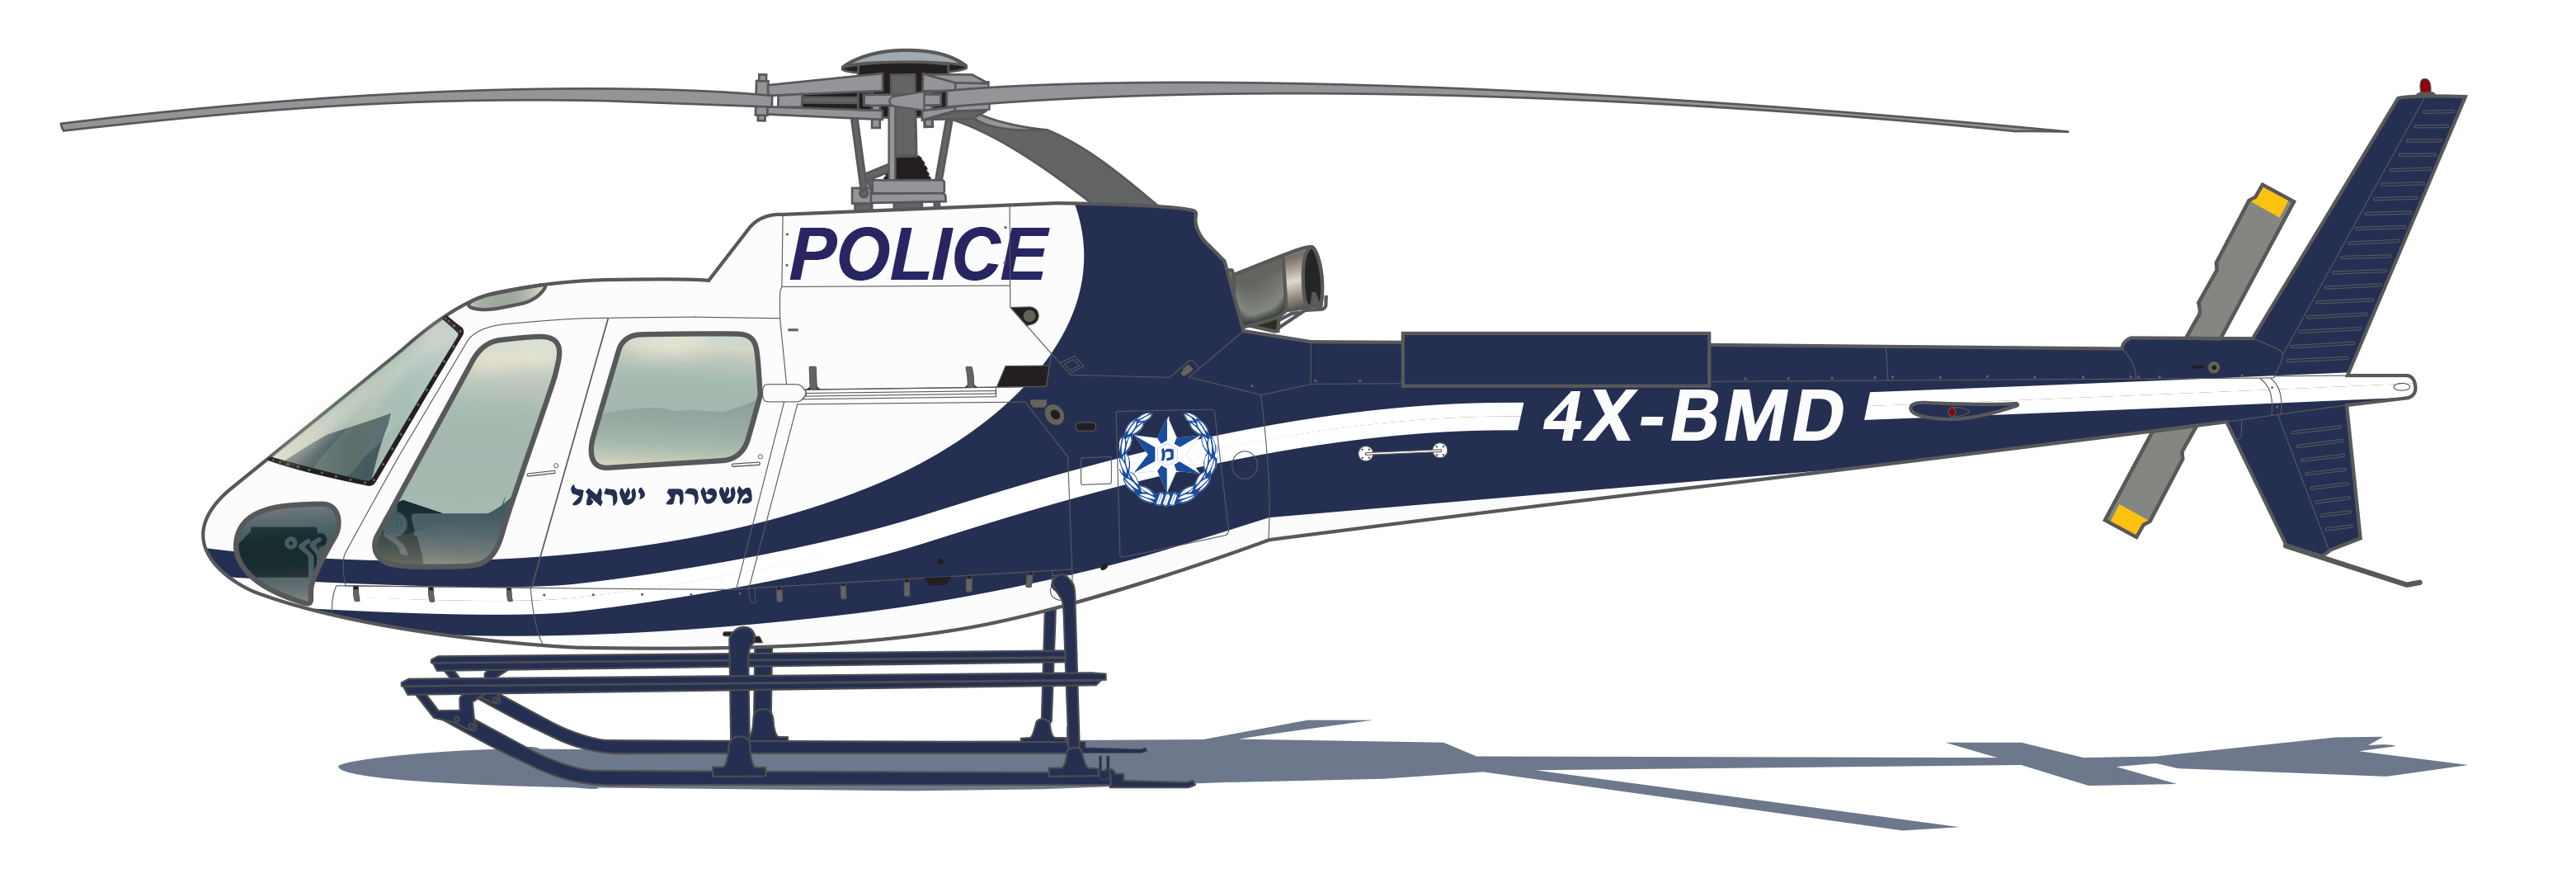 Drawing helicopters police helicopter. Png clipart download free